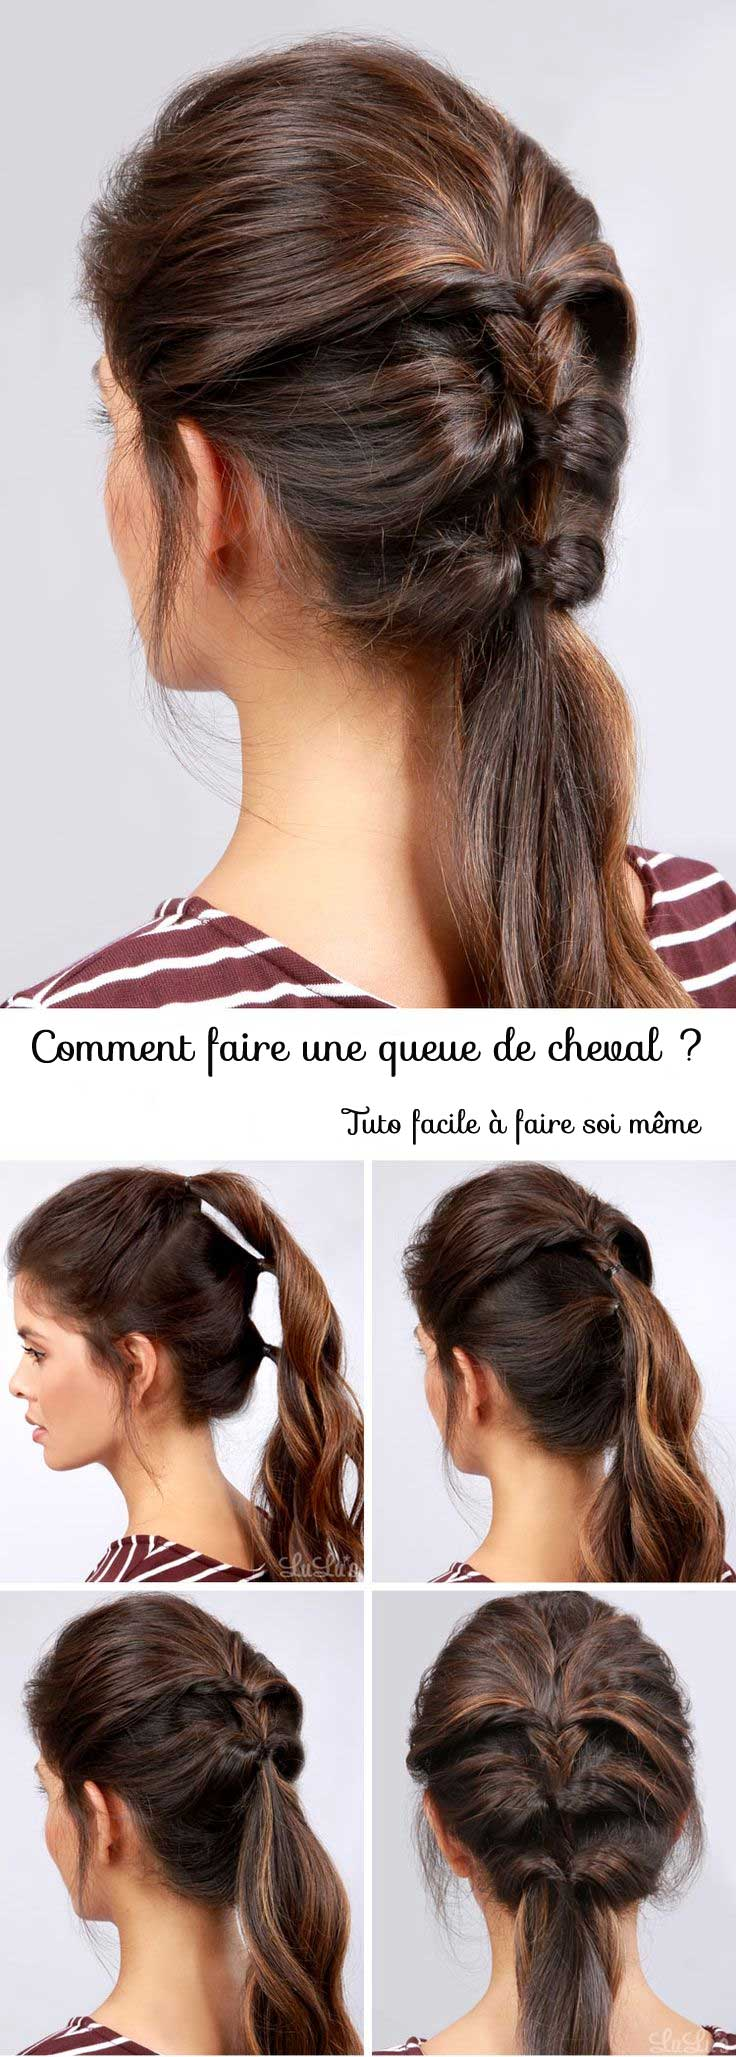 coiffure,queue,de,cheval,tuto